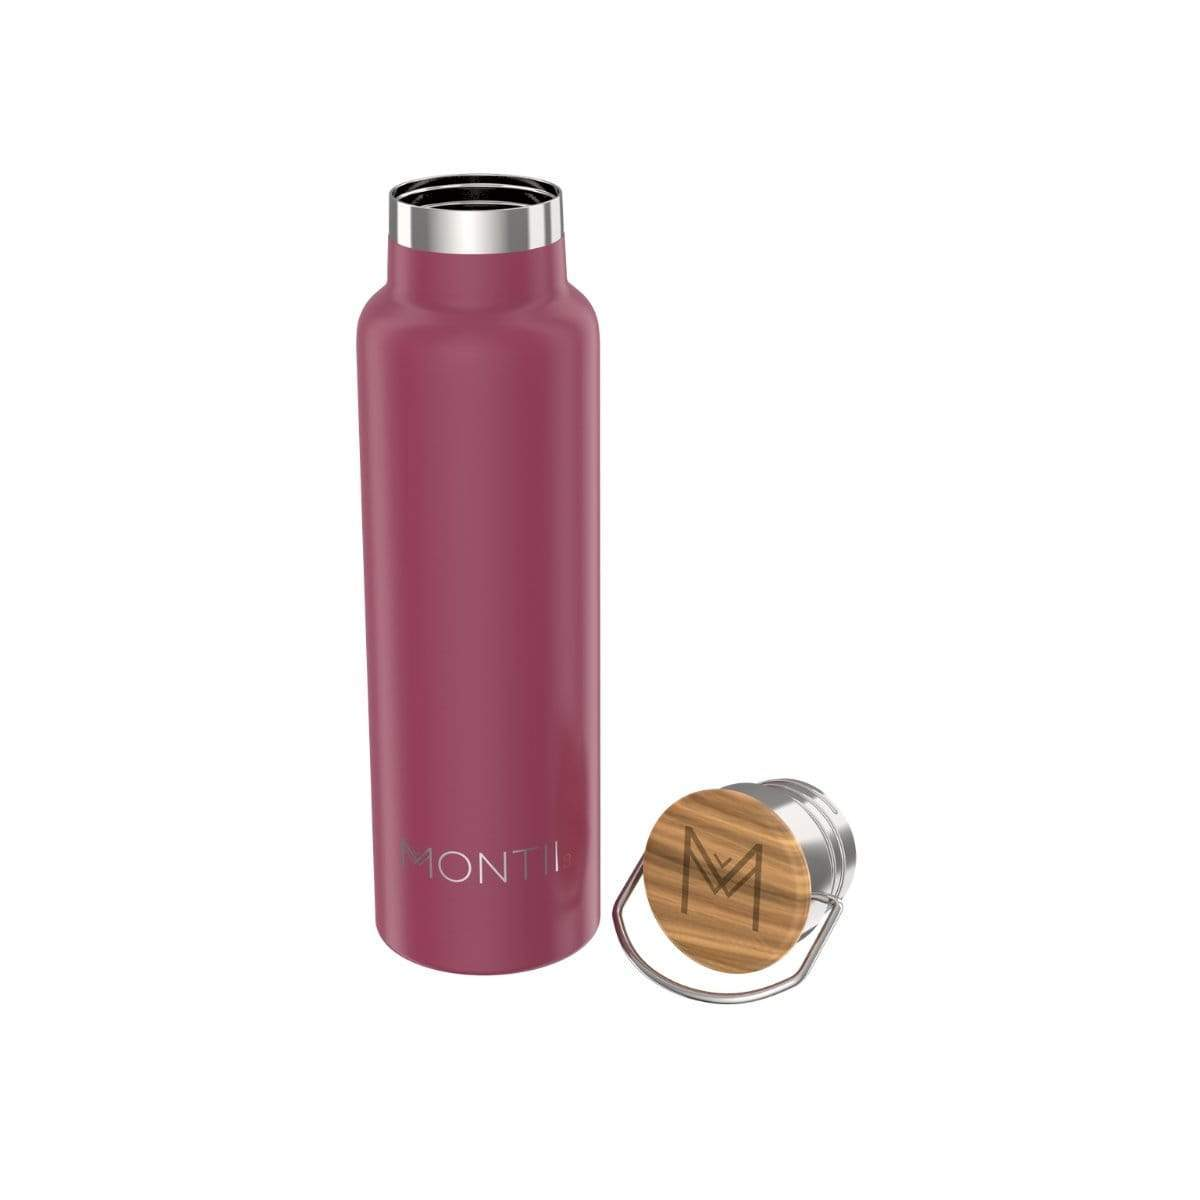 Montii Co Insulated Bottle 600ml Montii Water Bottles Burgundy at Little Earth Nest Eco Shop